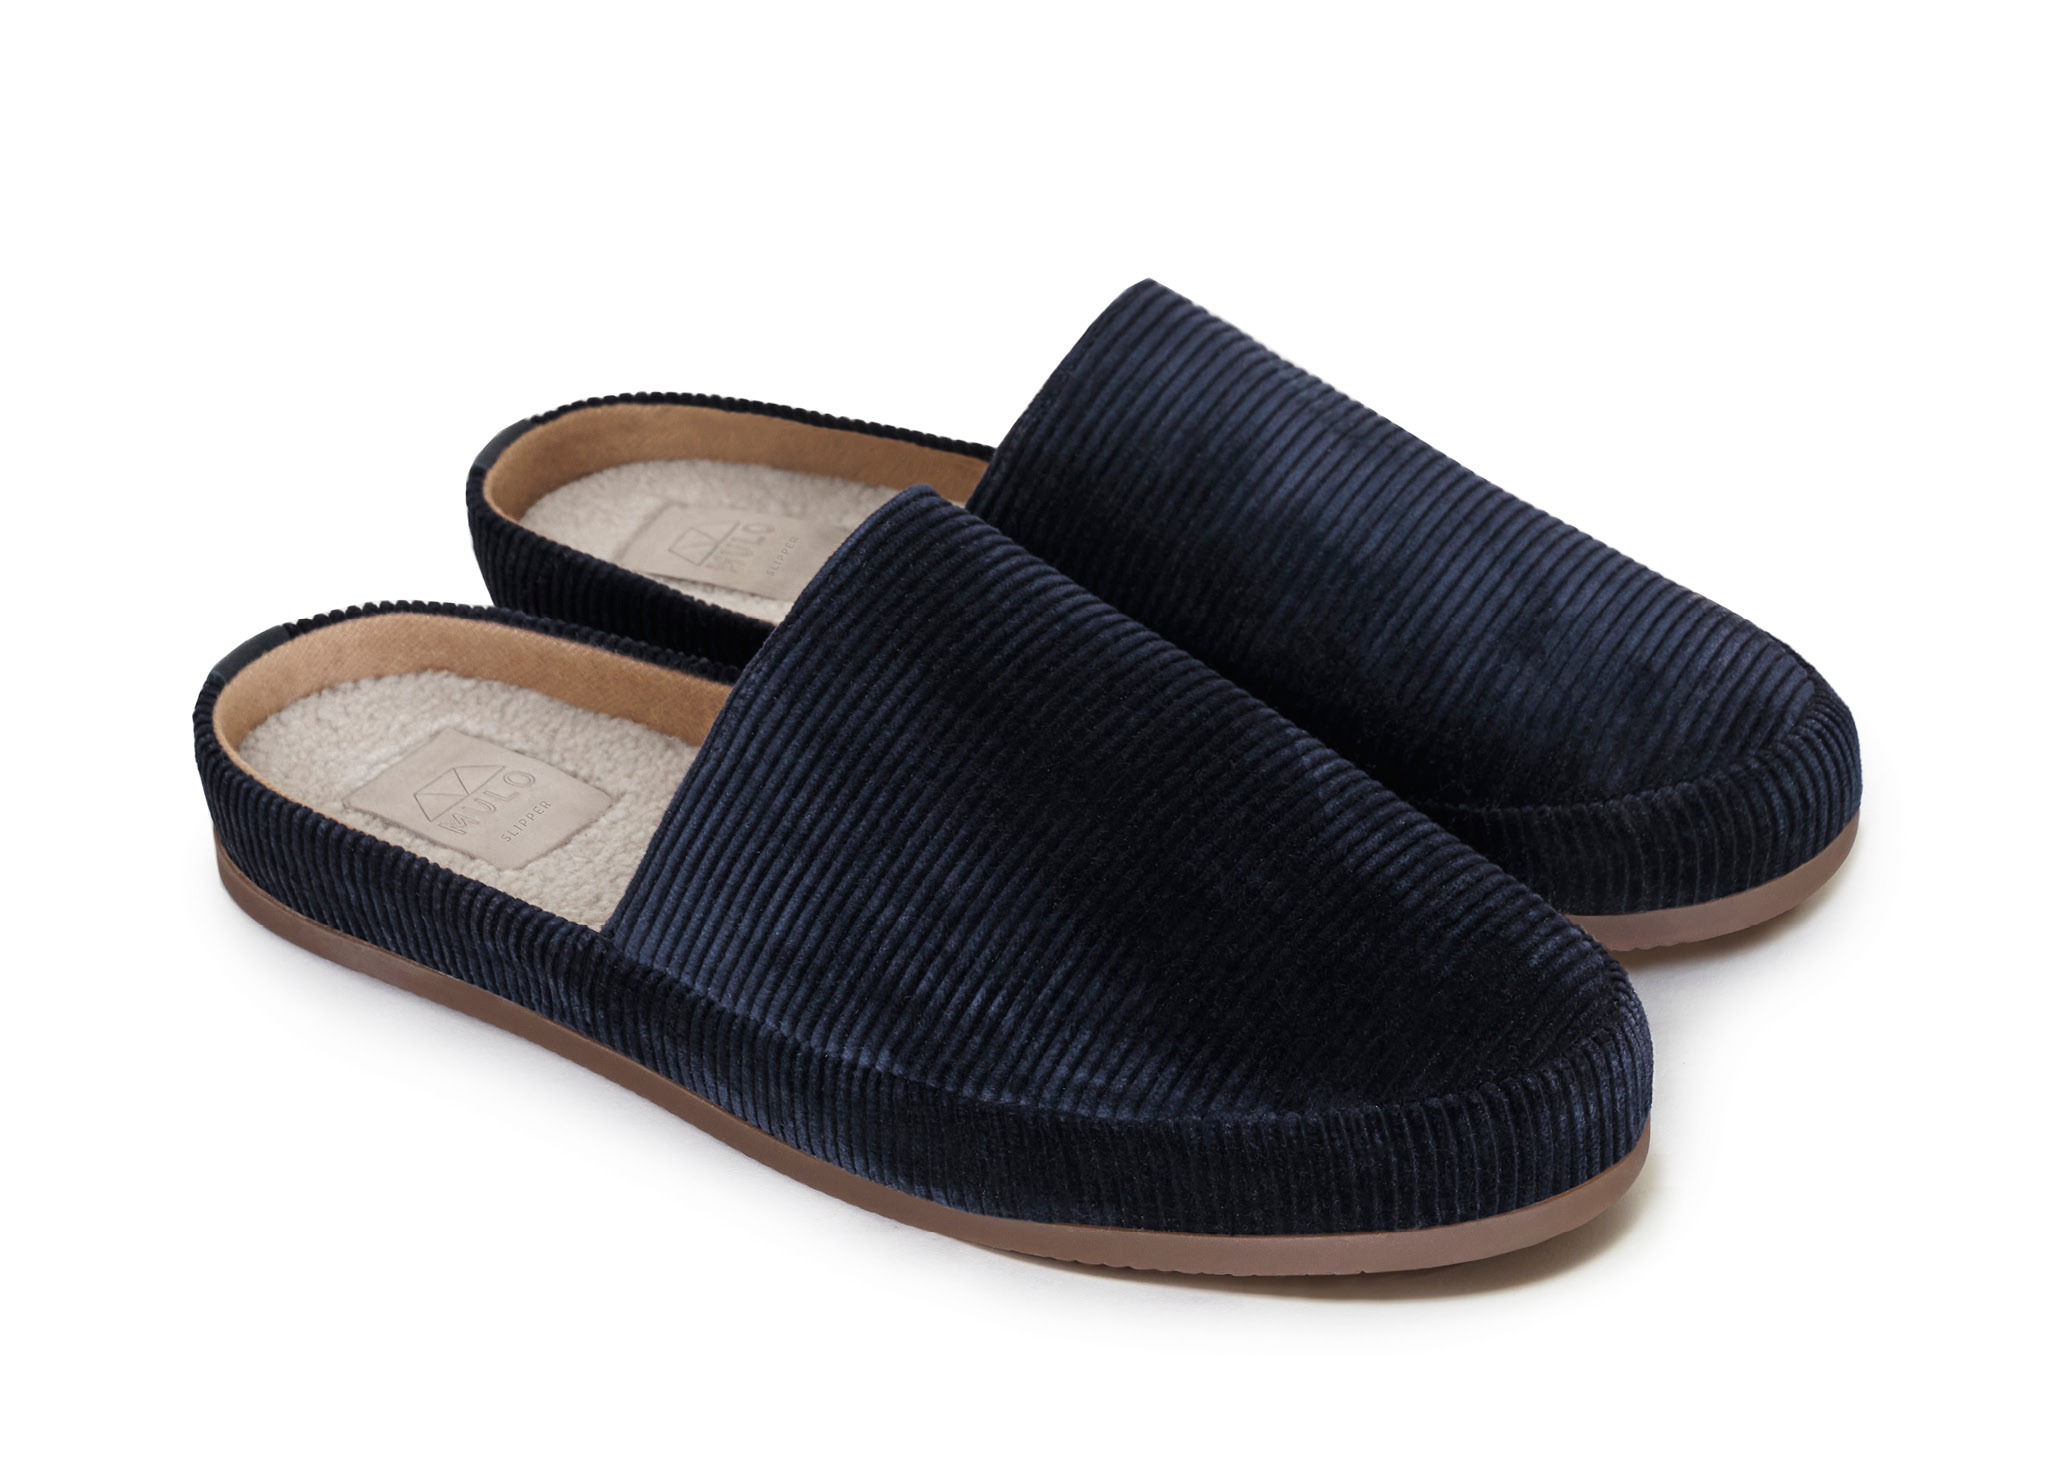 Blue Mens Slippers in Corduroy | MULO shoes